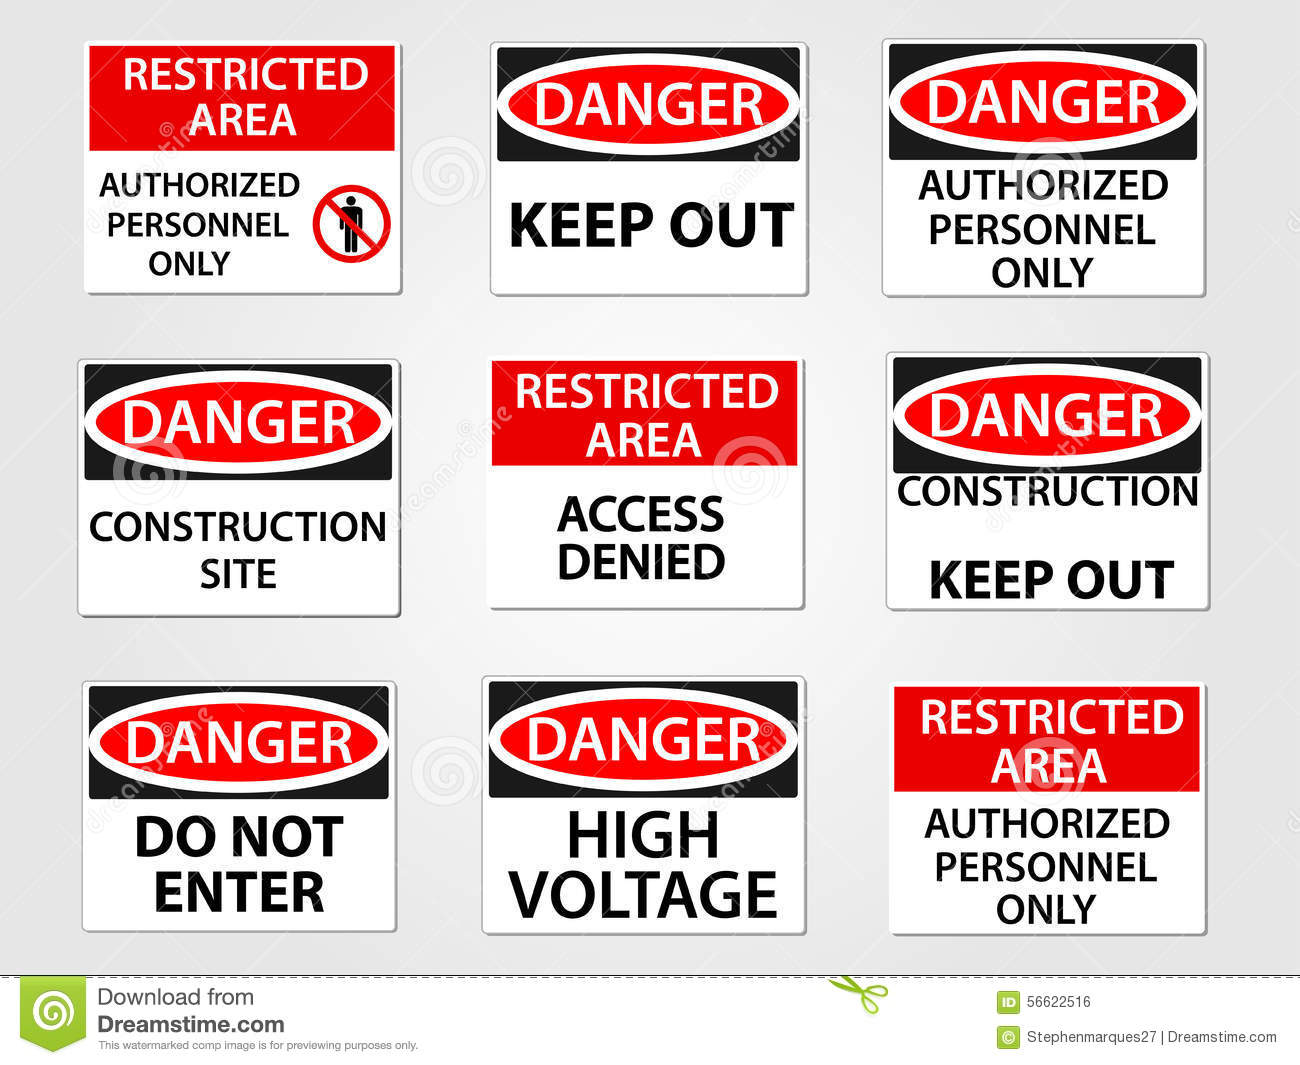 restricted area download free